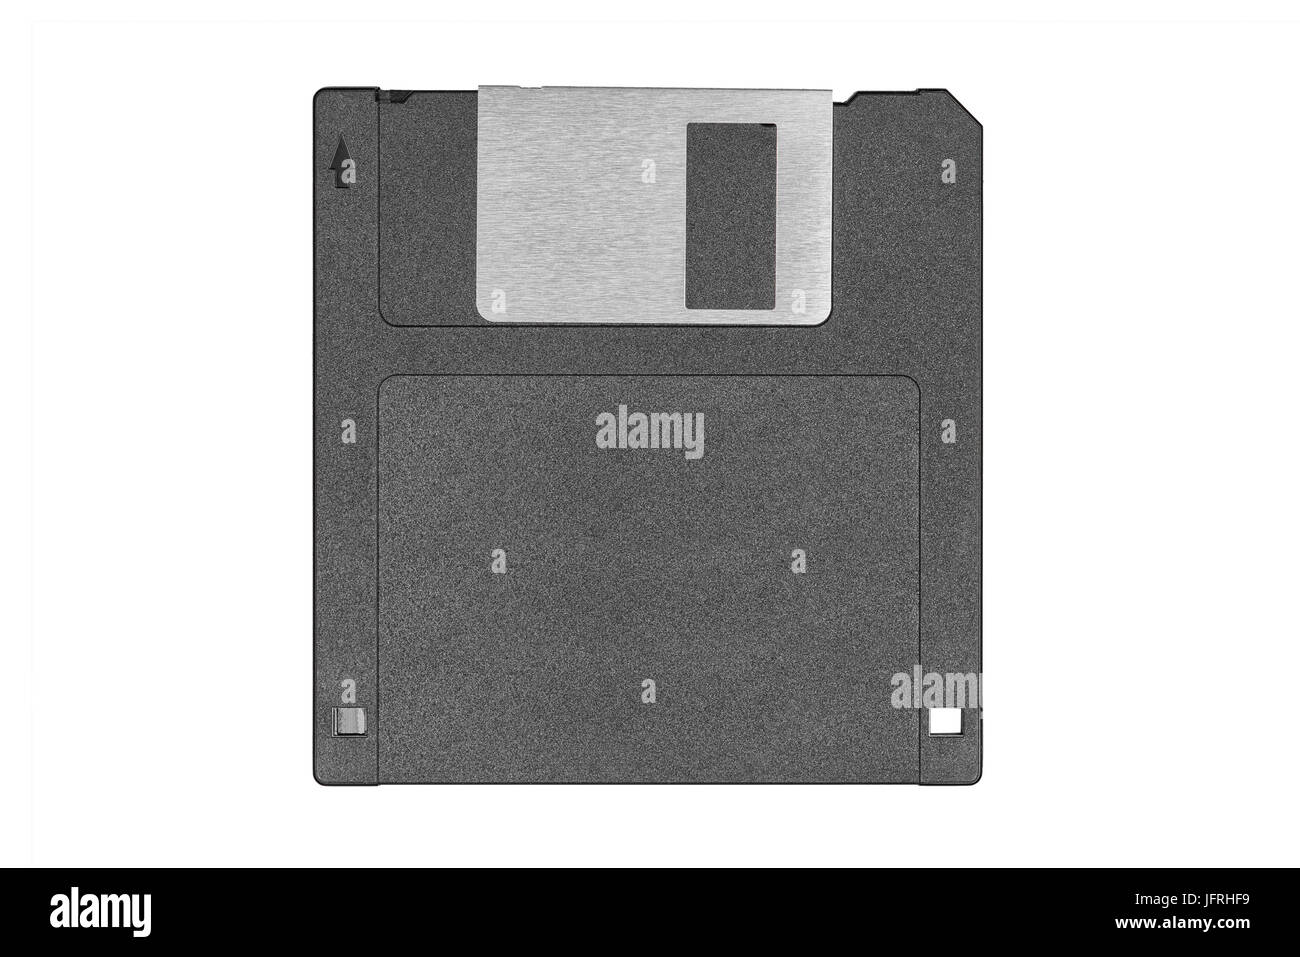 top view of a black vintage floppy disk on white background - Stock Image